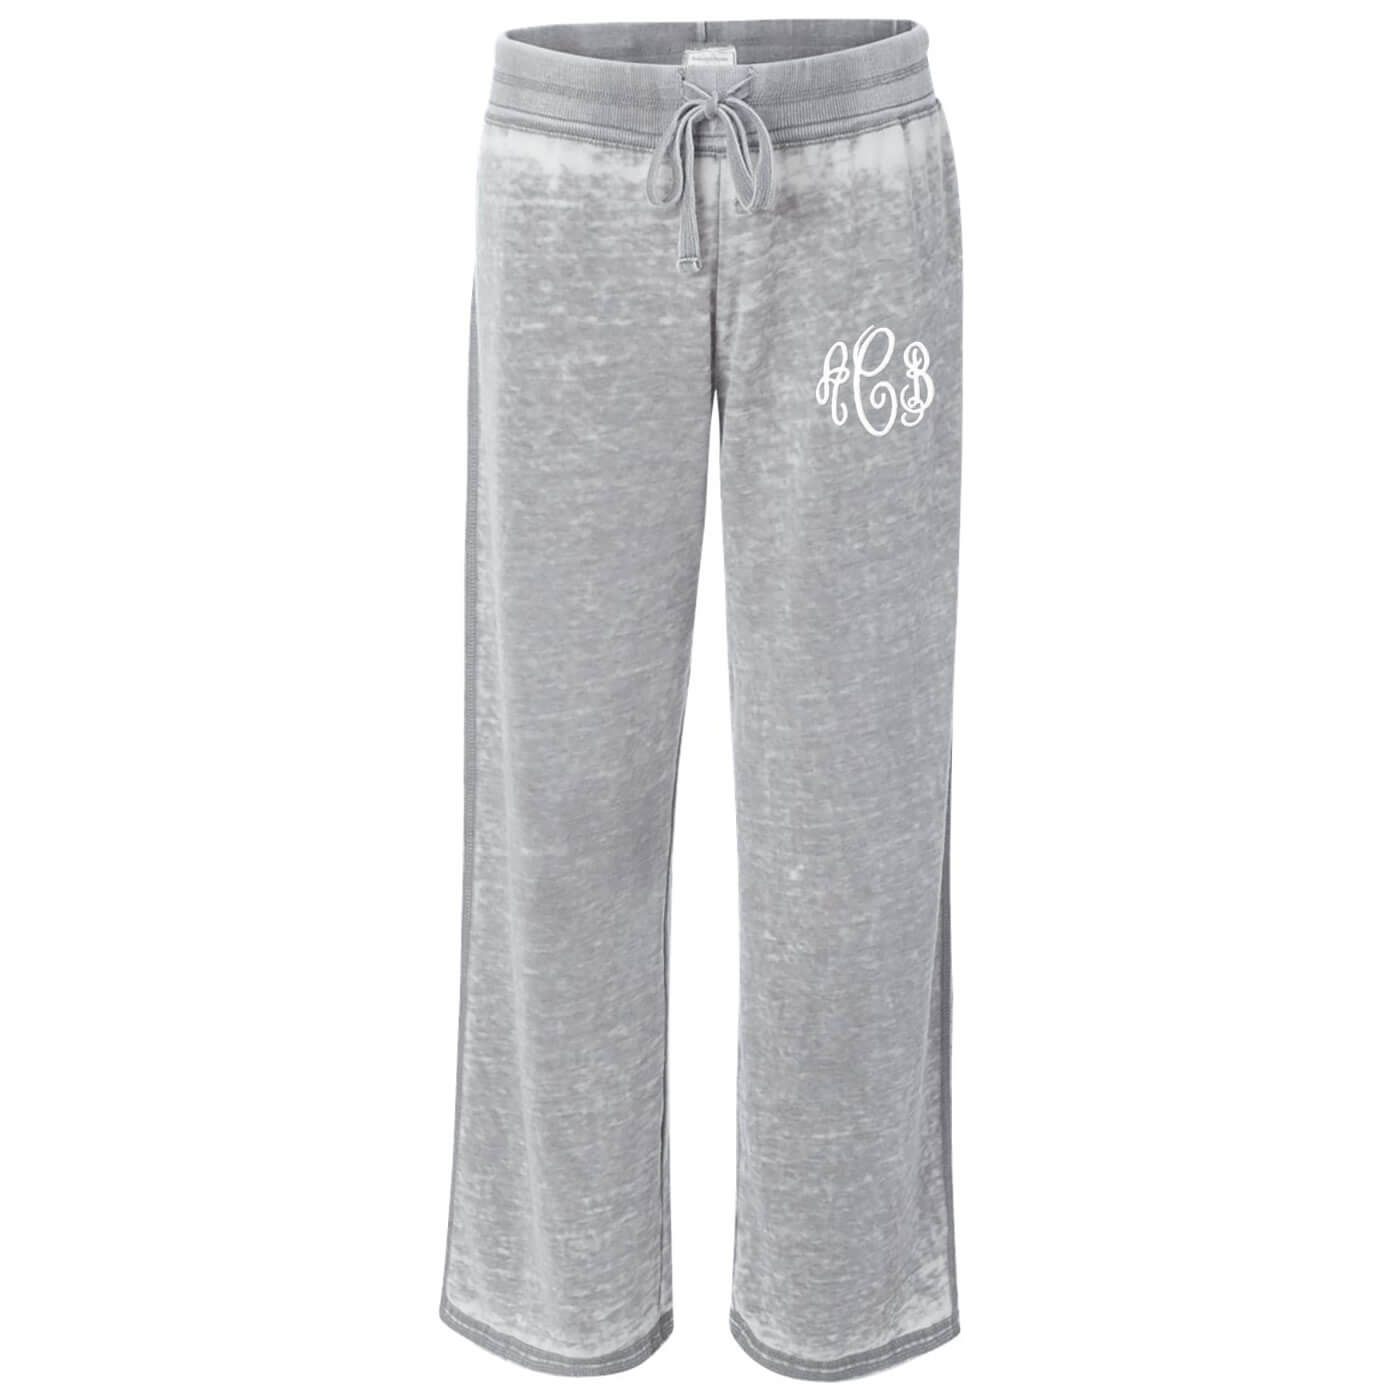 Personalized Pants With Monogram Personalized Brides